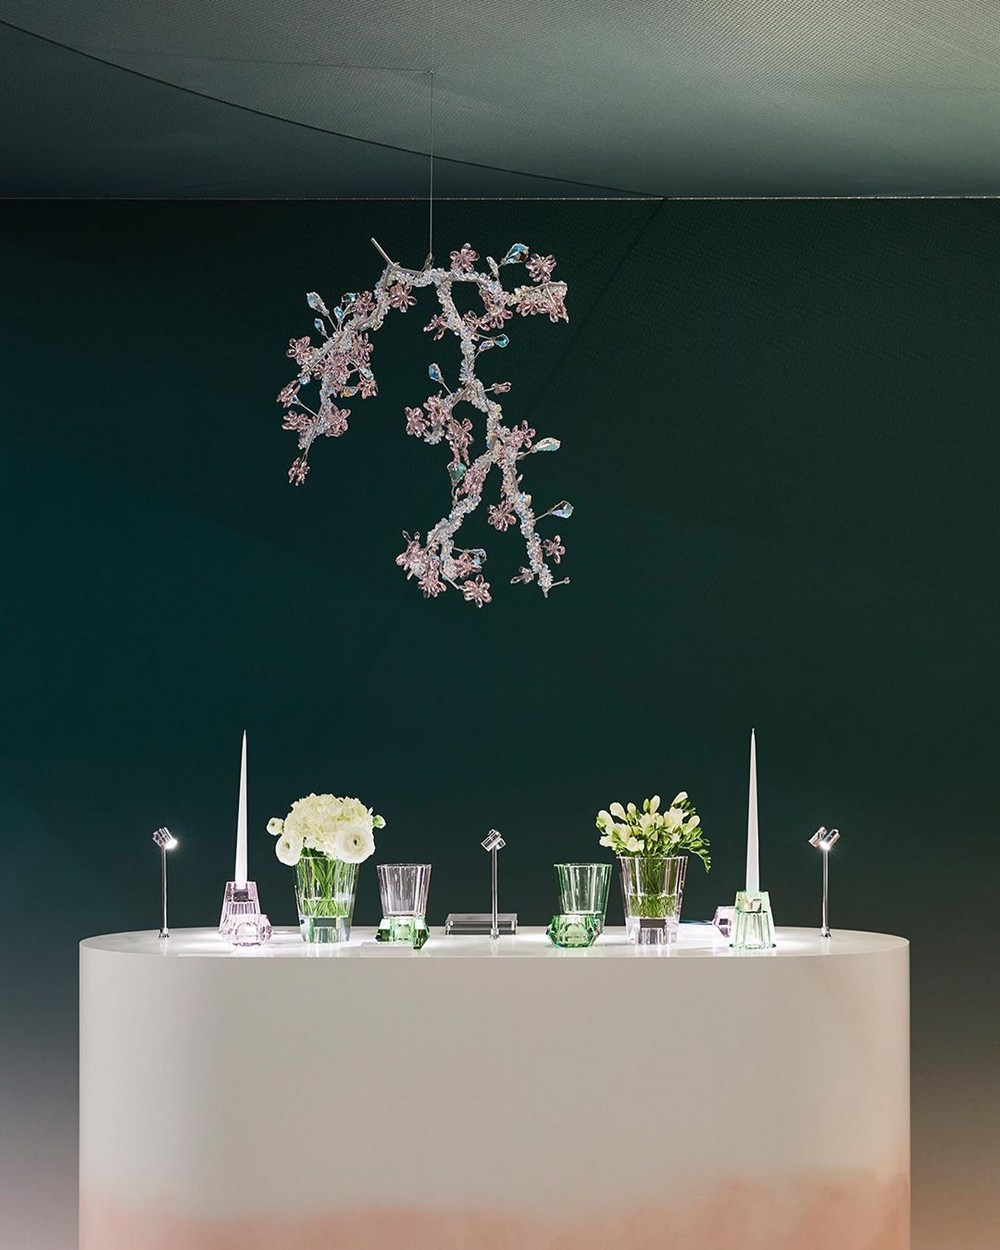 maison et objet 2020 Feast Your Eyes to the Best Moments of Maison et Objet 2020 Feast Your Eyes to the Best Moments of Maison et Objet 2020 49